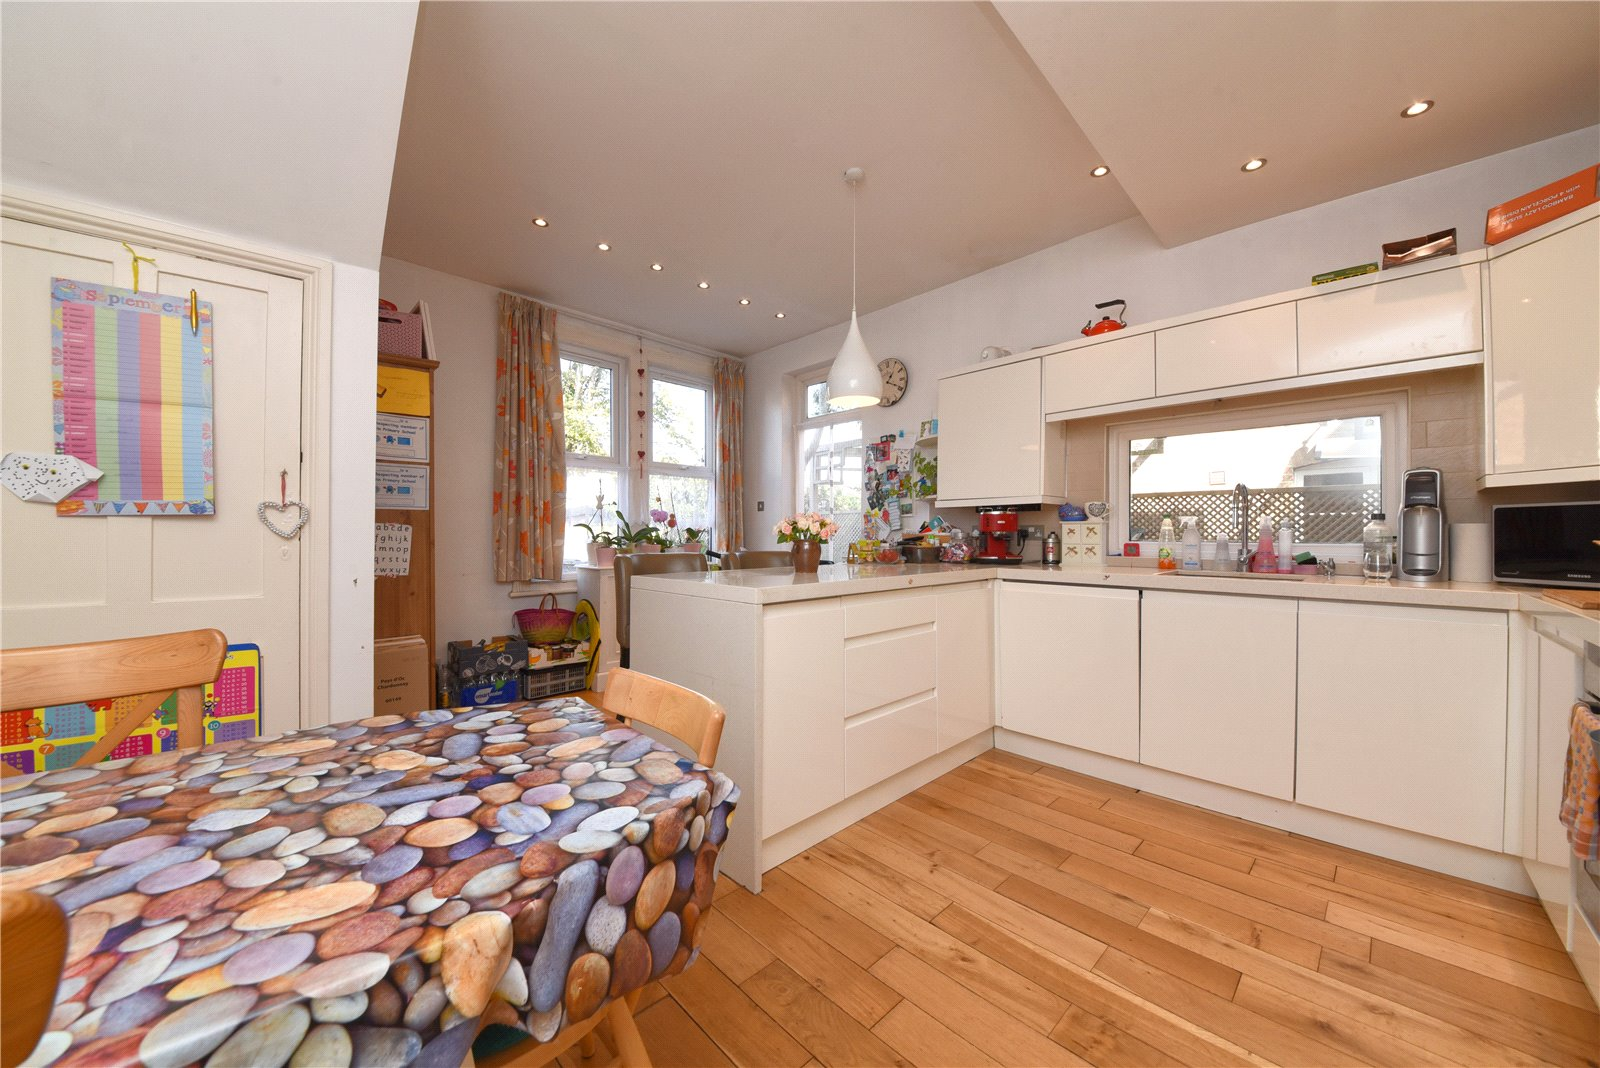 2 bed apartment for sale in East Finchley, N2 0SX 5